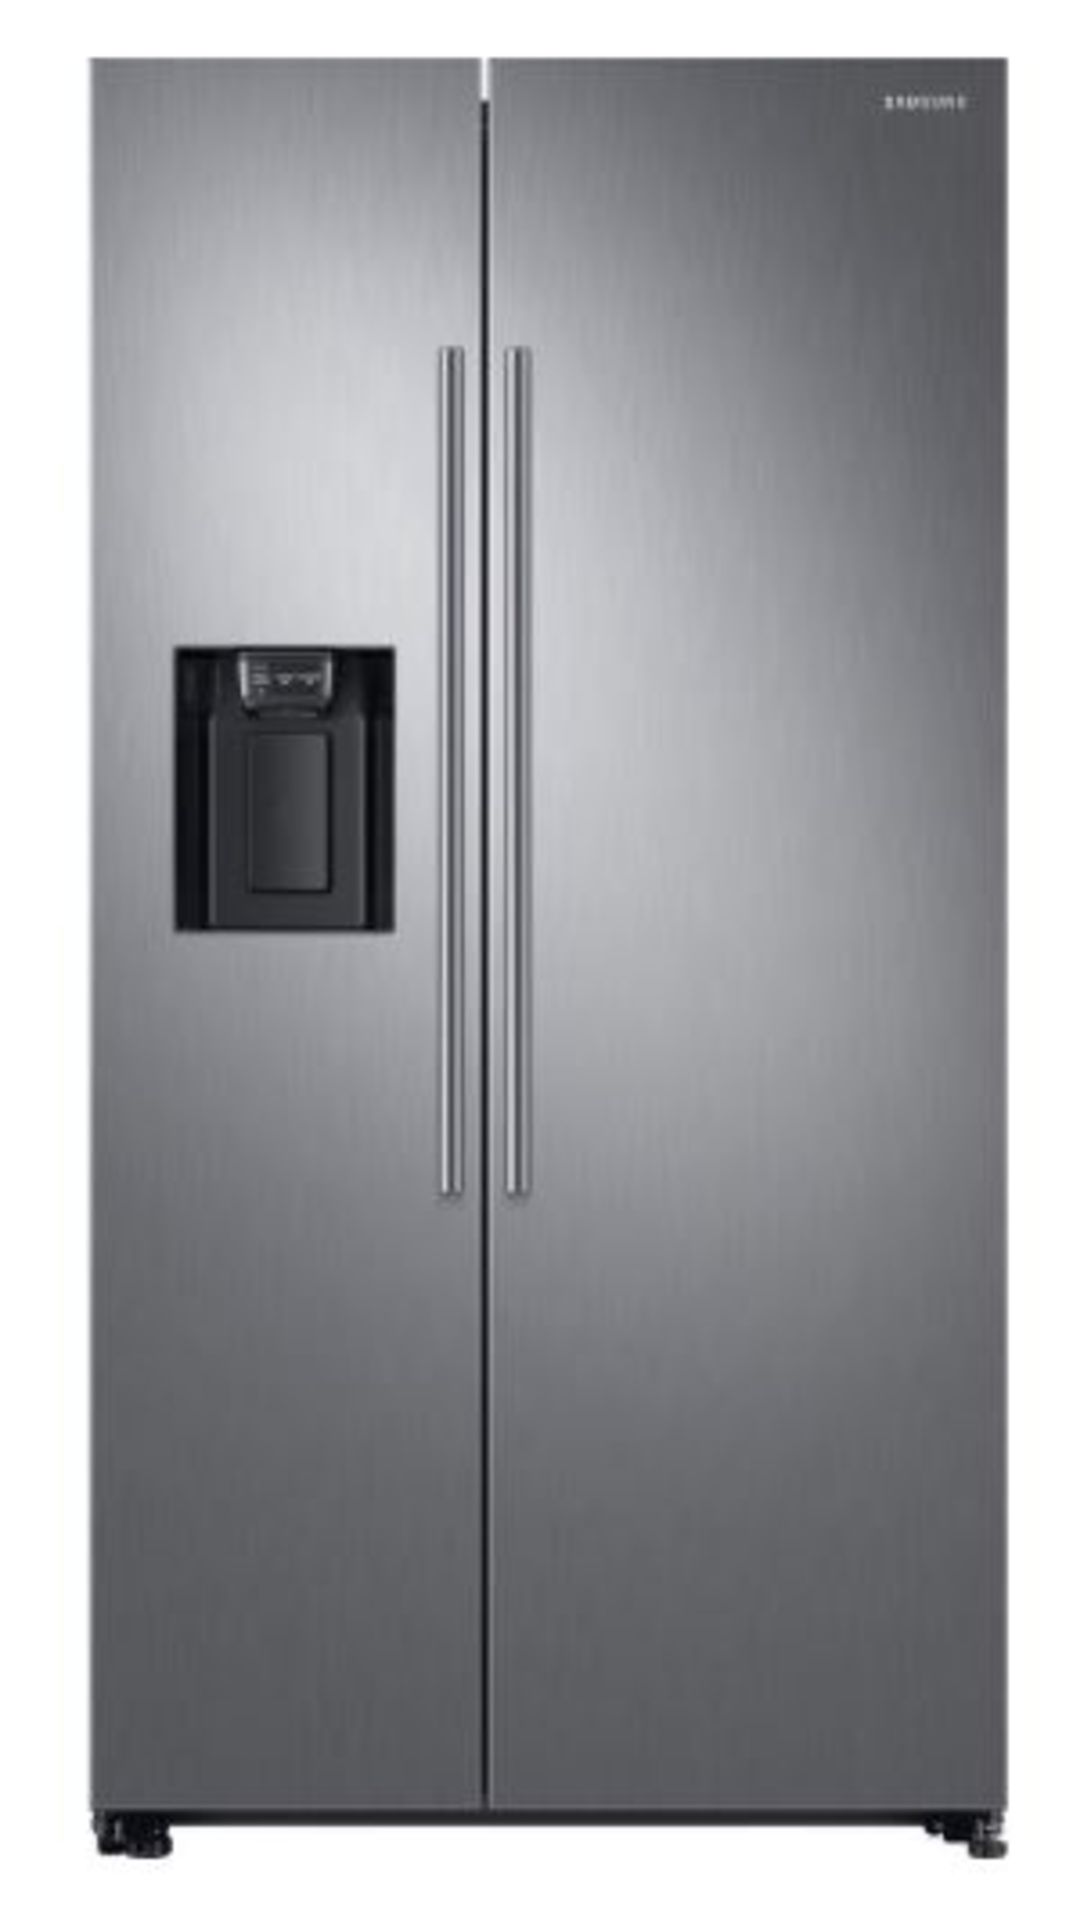 Pallet of 1 Samsung Water & Ice Fridge freezer. Latest selling price £1,299.99*